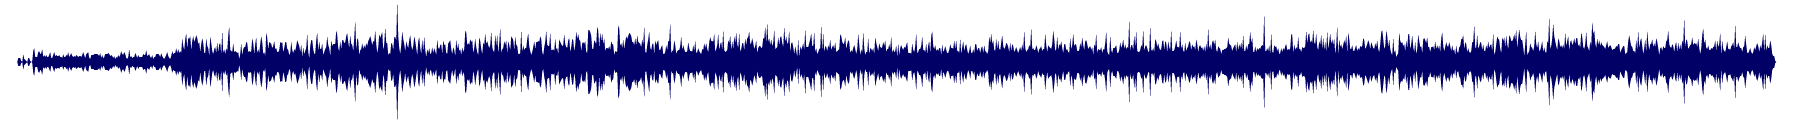 waveform of track #68260